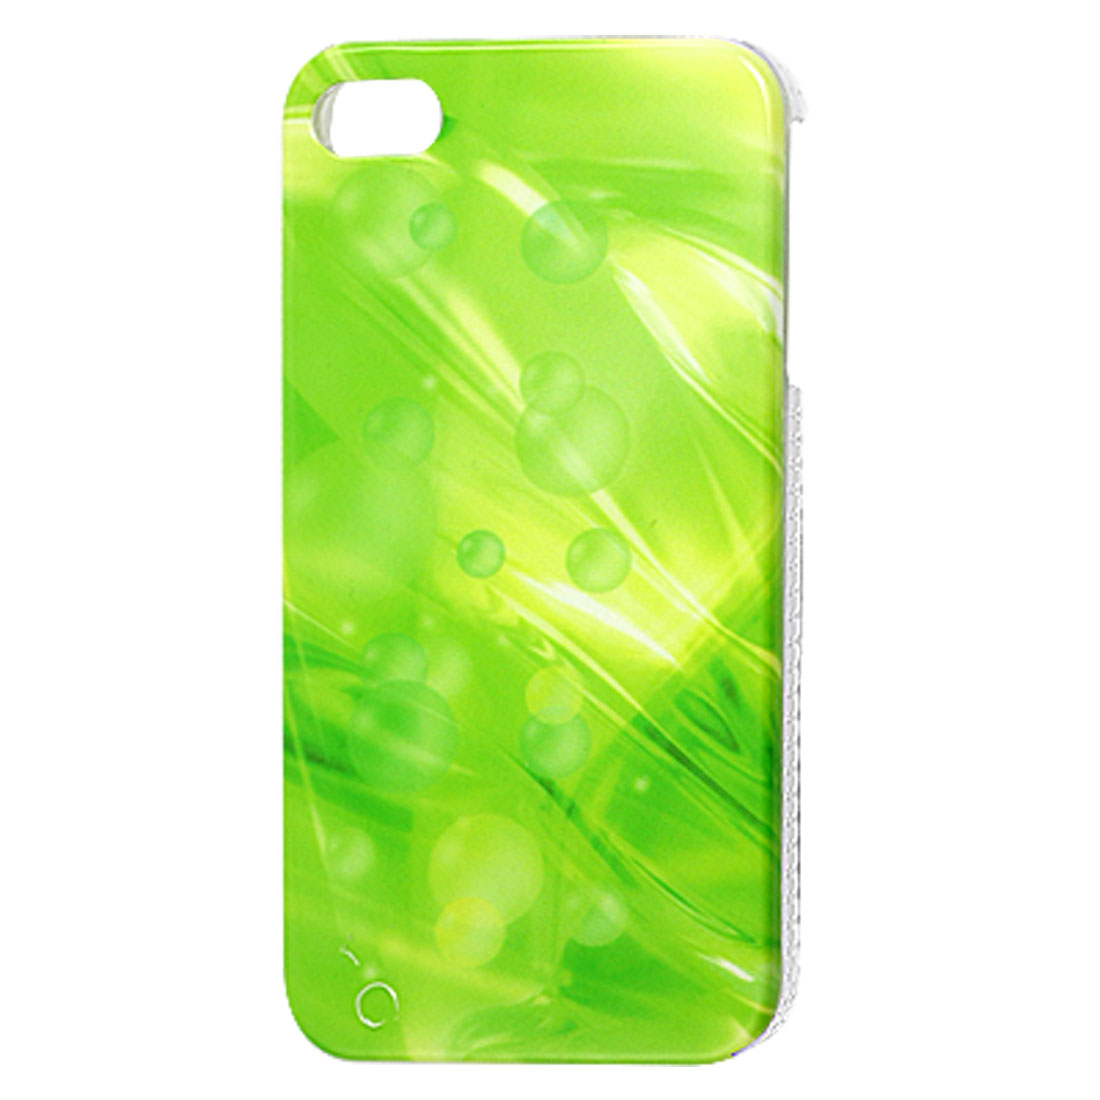 Bubble Pattern Green Hard Plastic IMD Back Case for iPhone 4 4G 4S